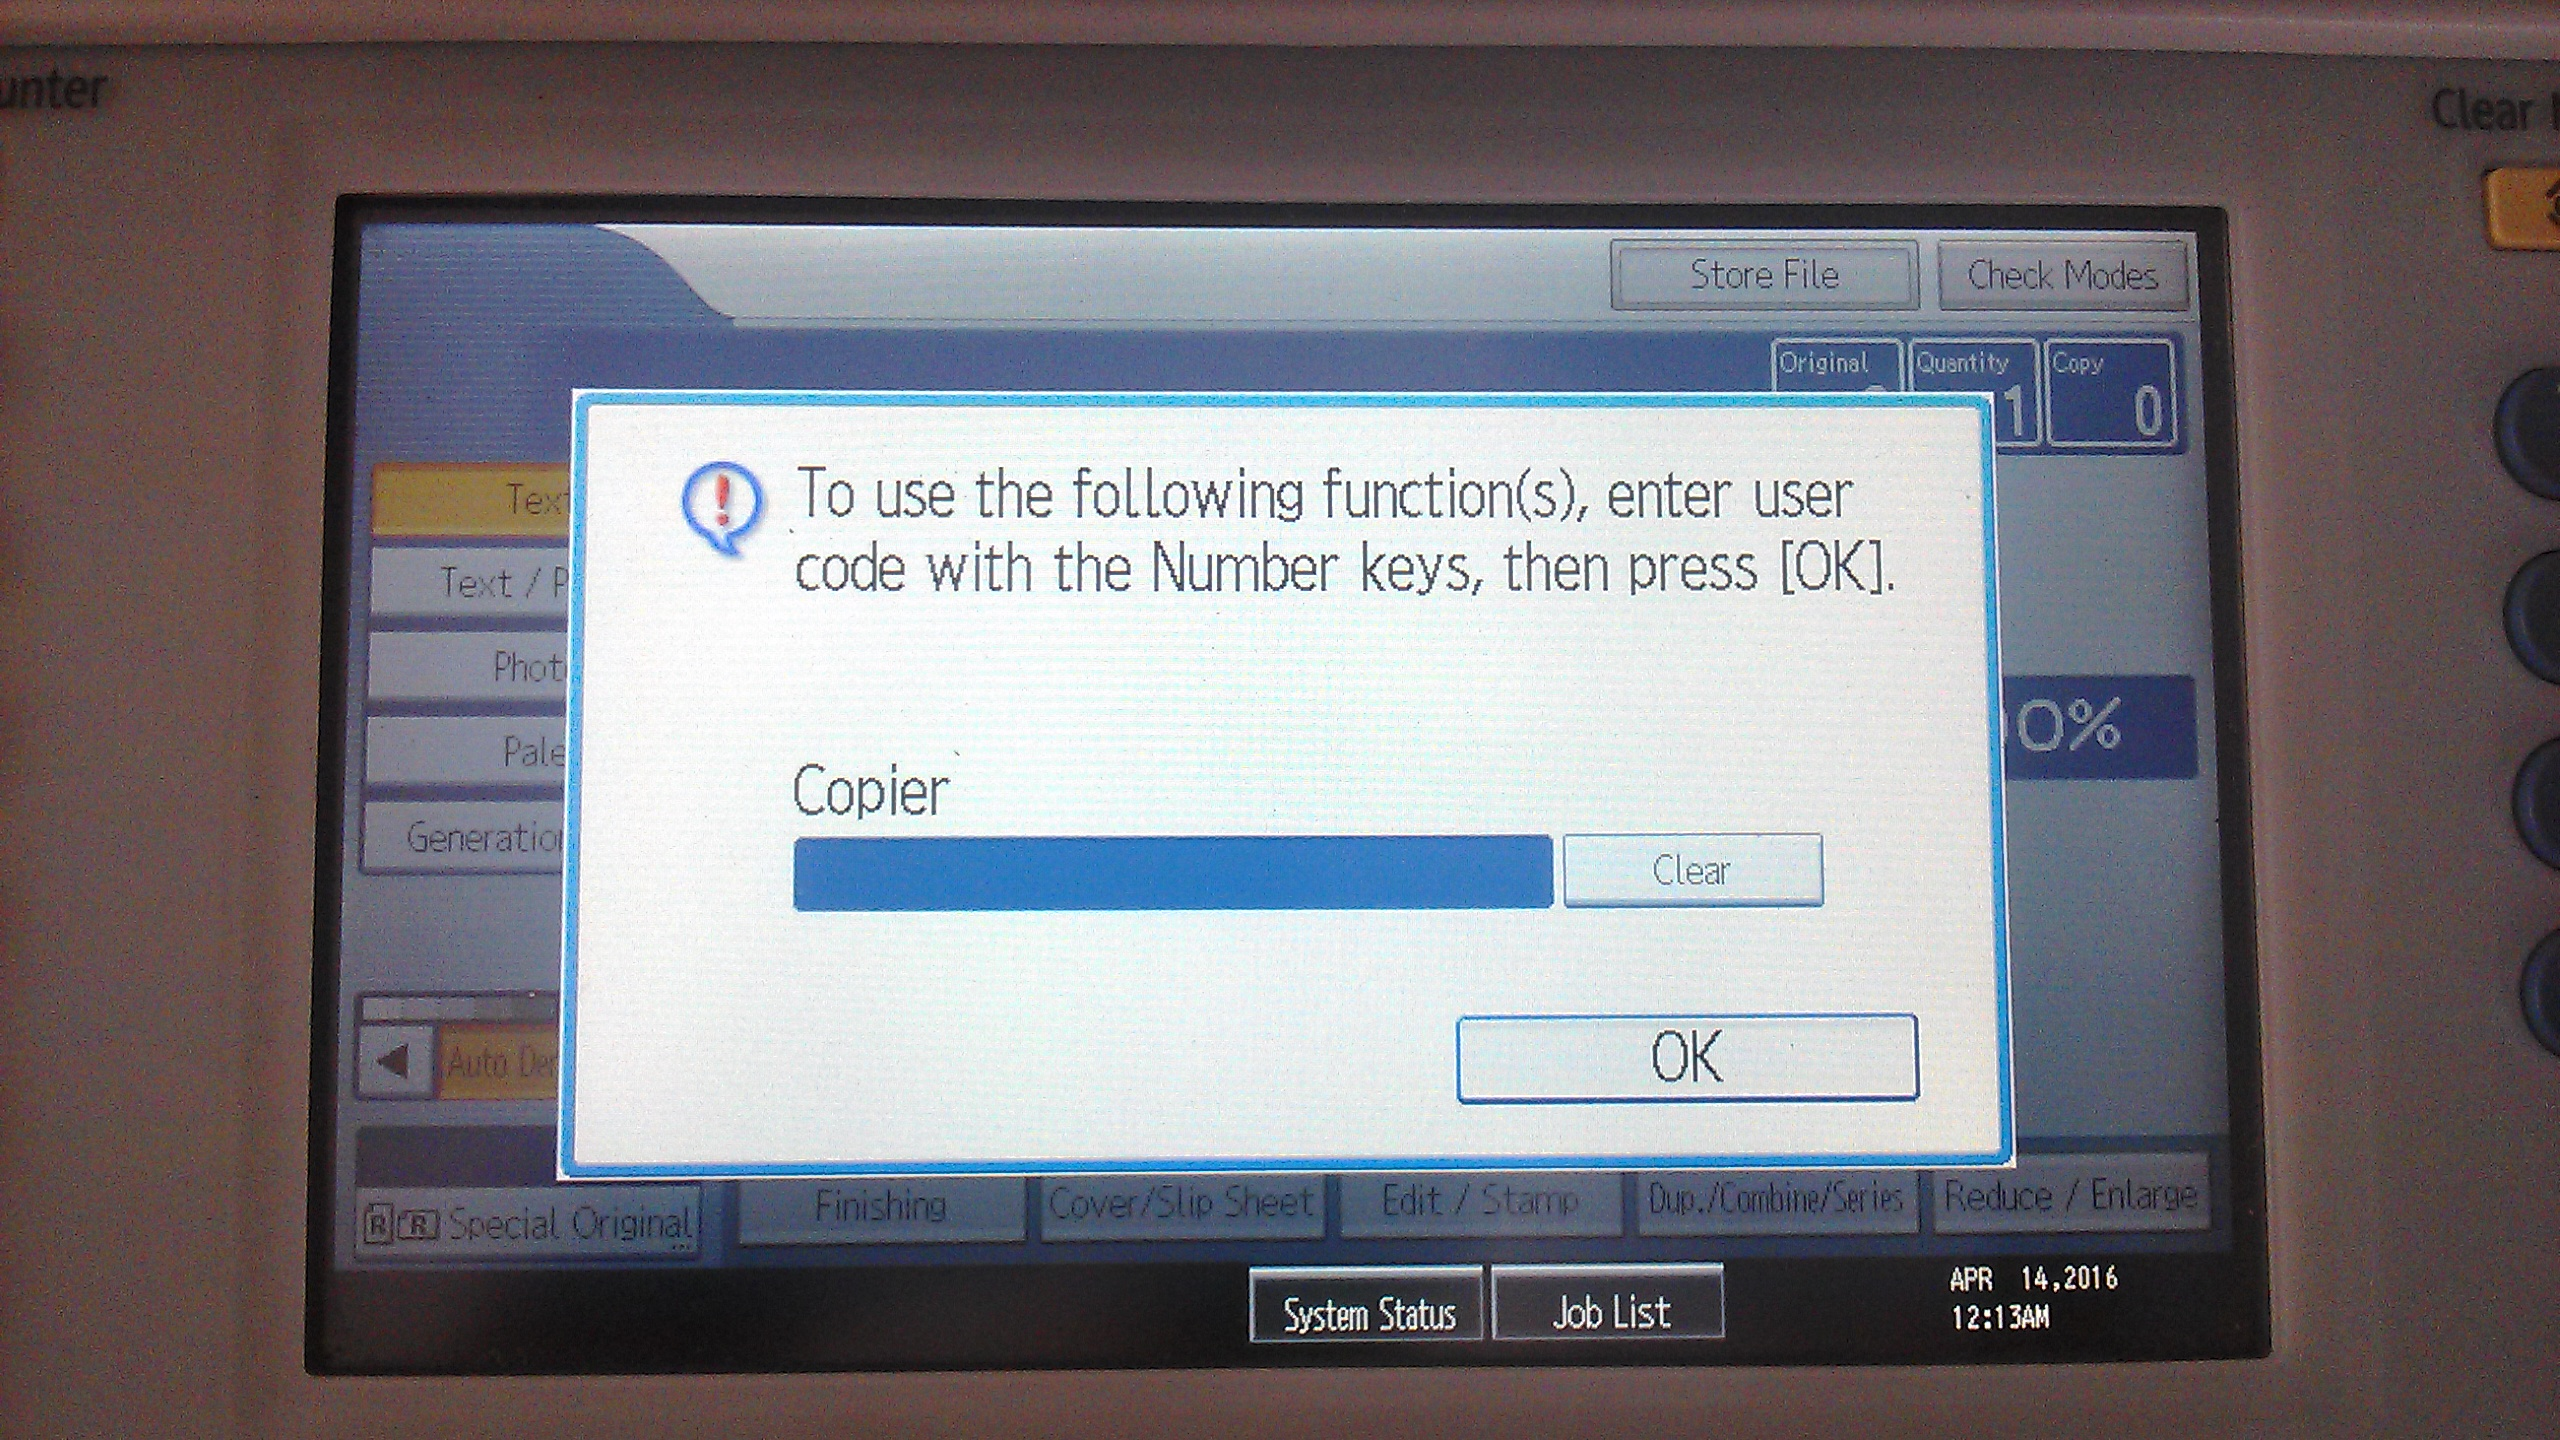 user code photocopy ricoh